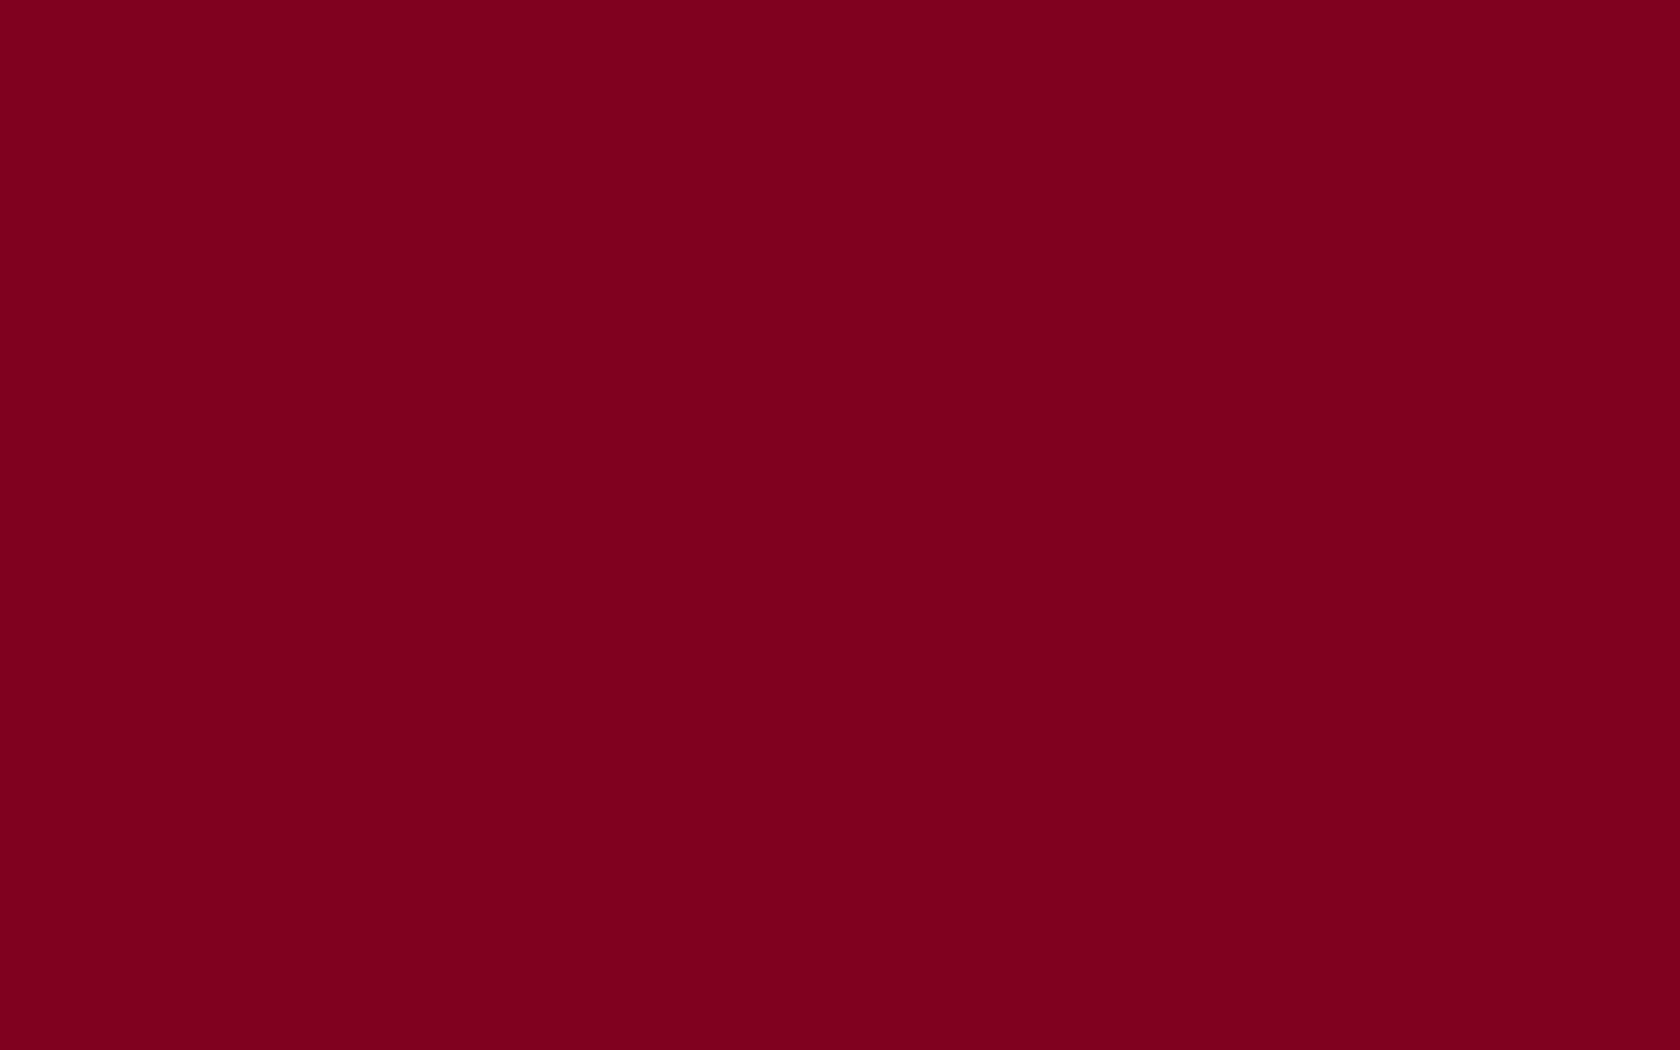 1680x1050 Burgundy Solid Color Background